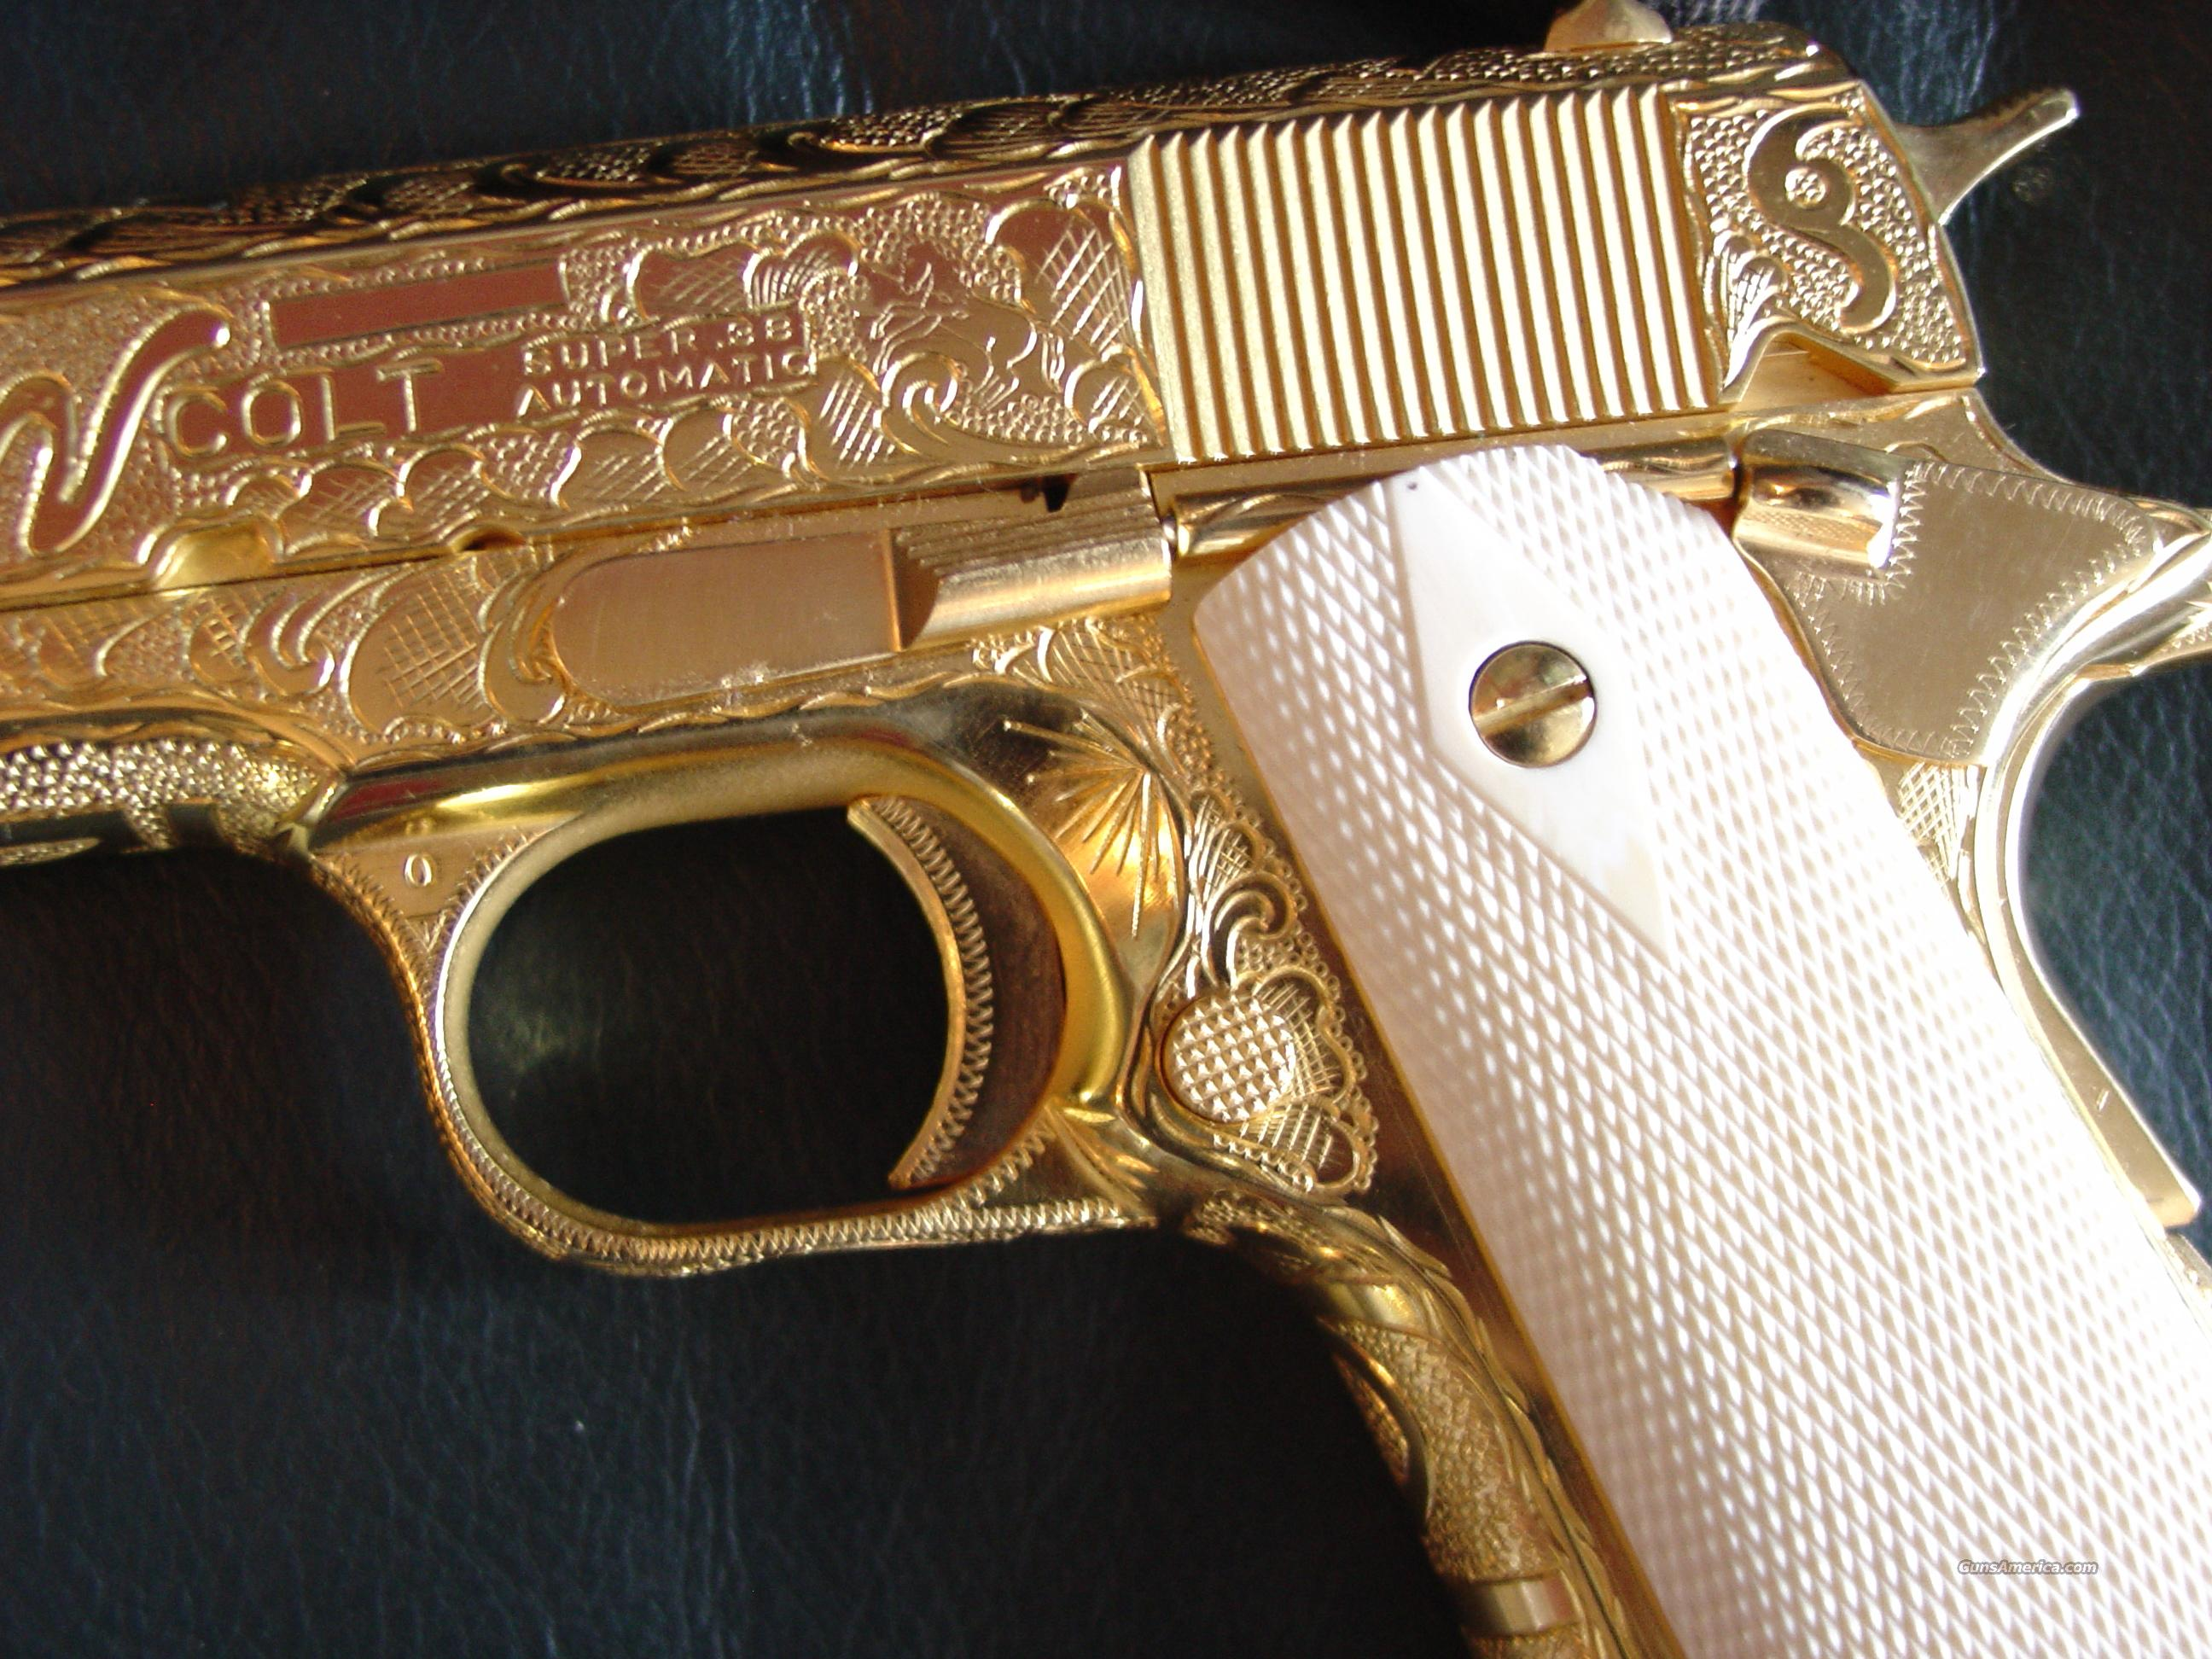 Colt 191138 Supermade In 194924k Gold Platedmaster Cattlebrand Engraved By Jeff Flanneryreal Checkered Ivory Grips A Real Piece Of Jewelry One